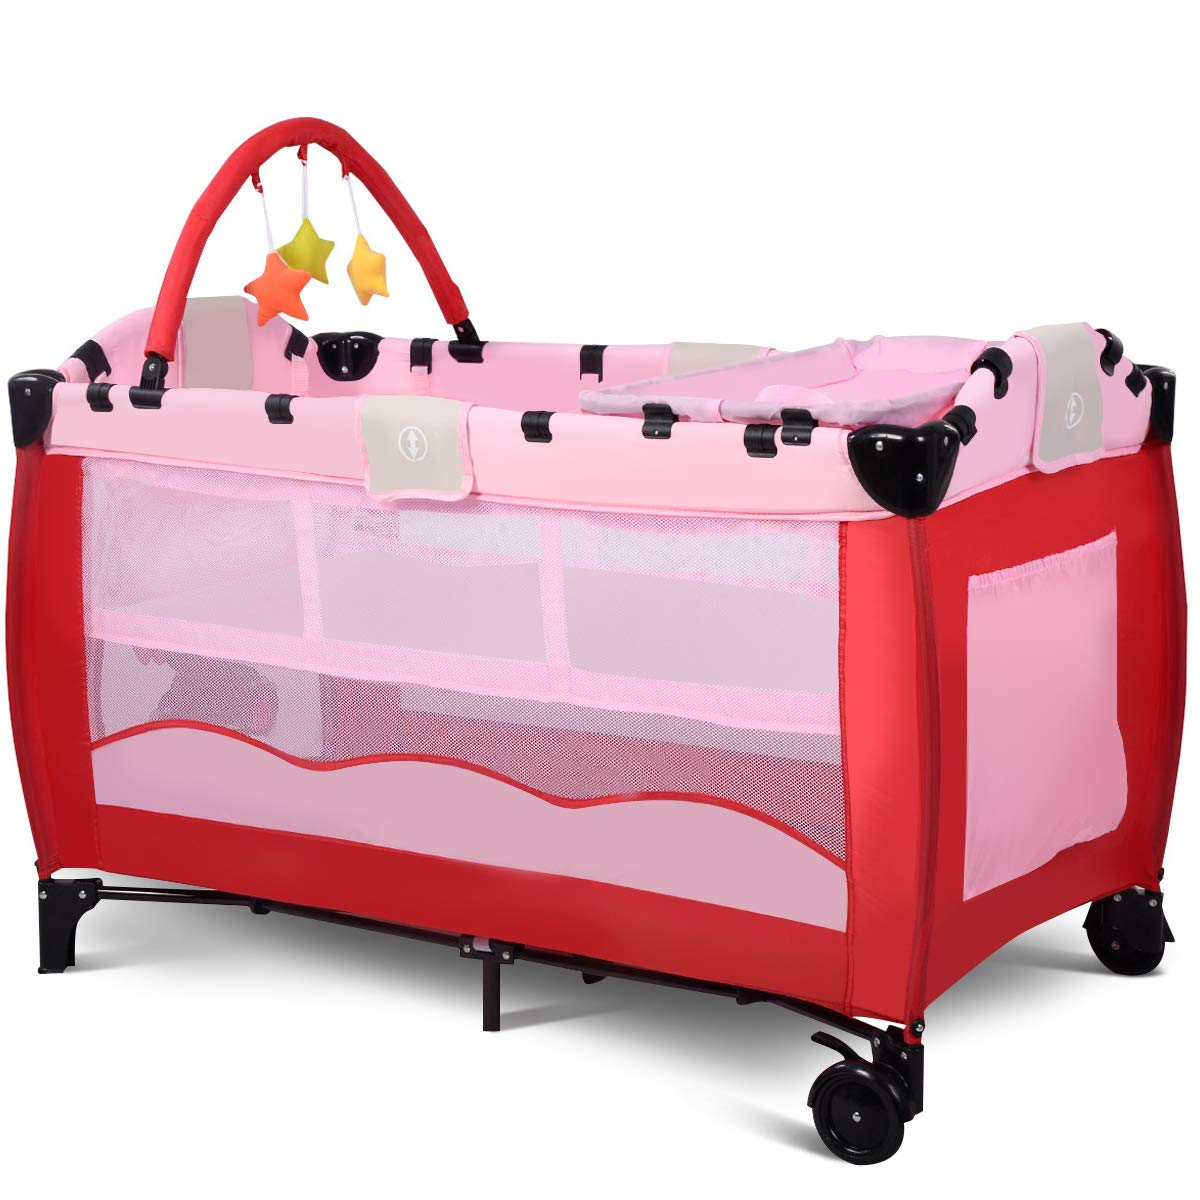 Giantex portable baby crib playpen pack travel infant bassinet bed pink